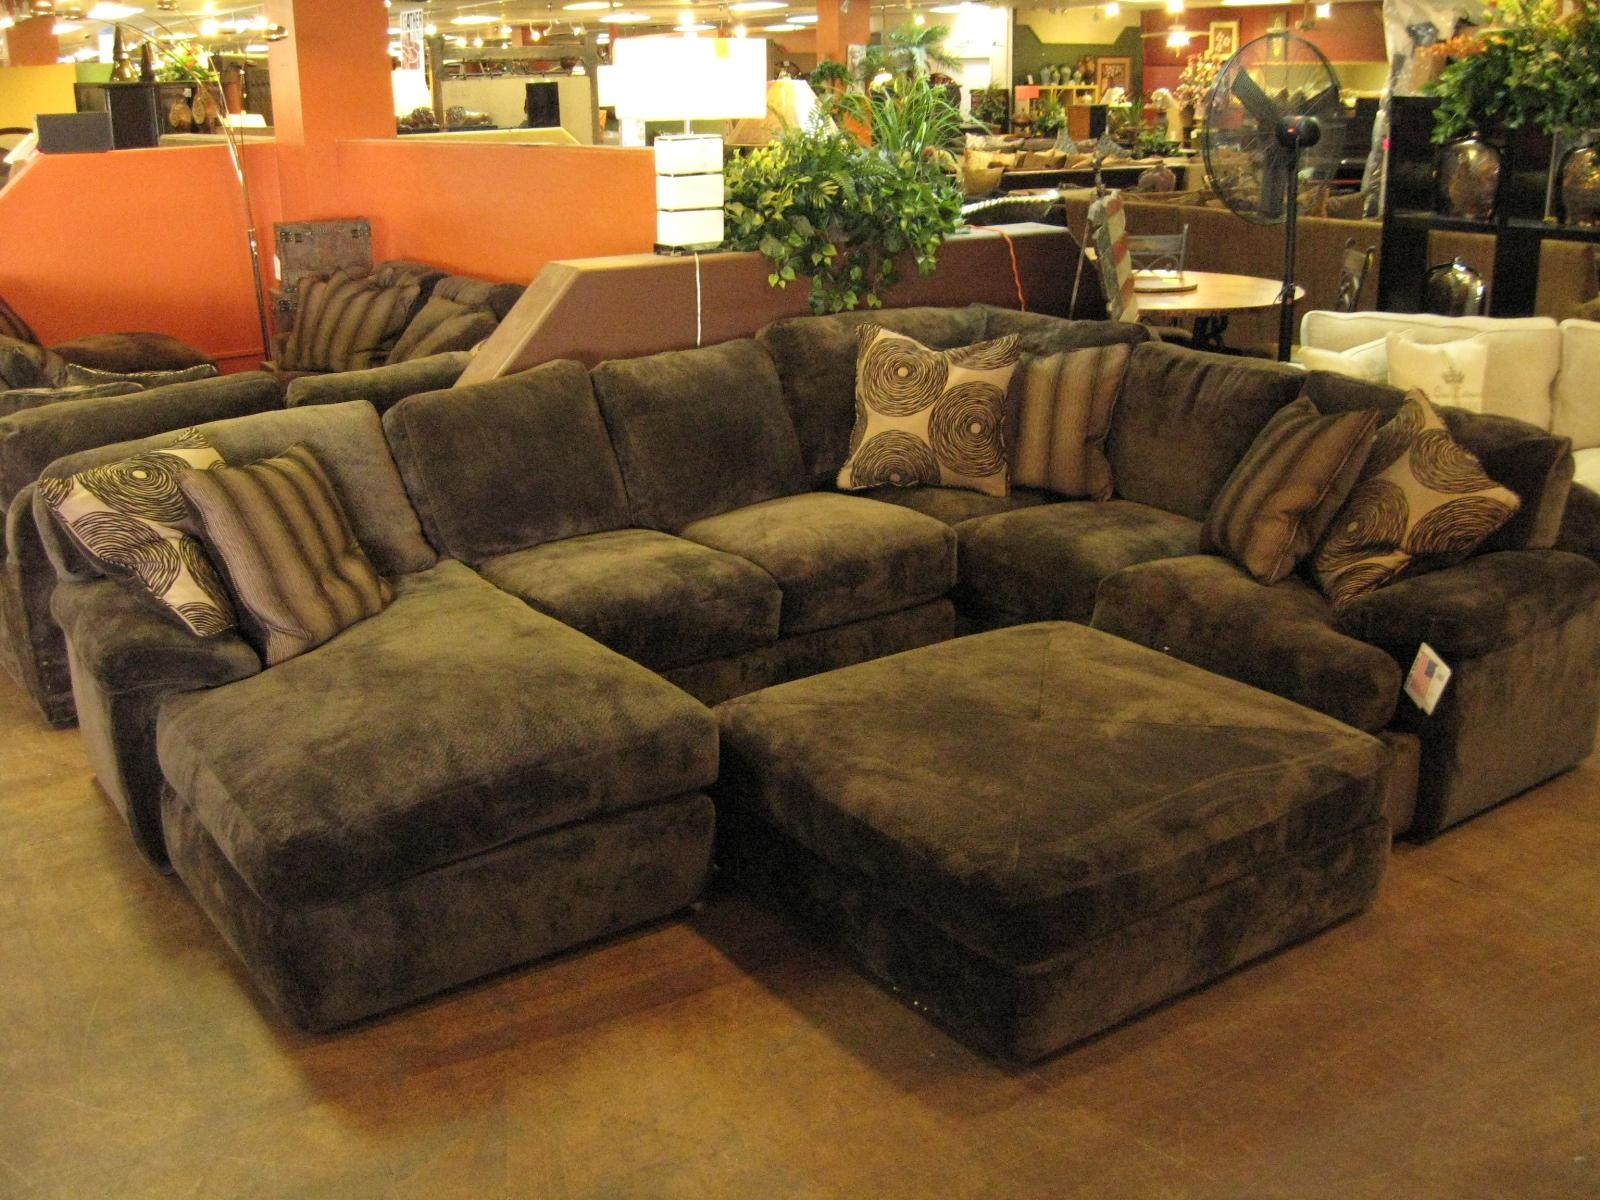 Large Sectional Sofas – Helpformycredit Inside Large Comfortable Sectional Sofas (View 4 of 20)